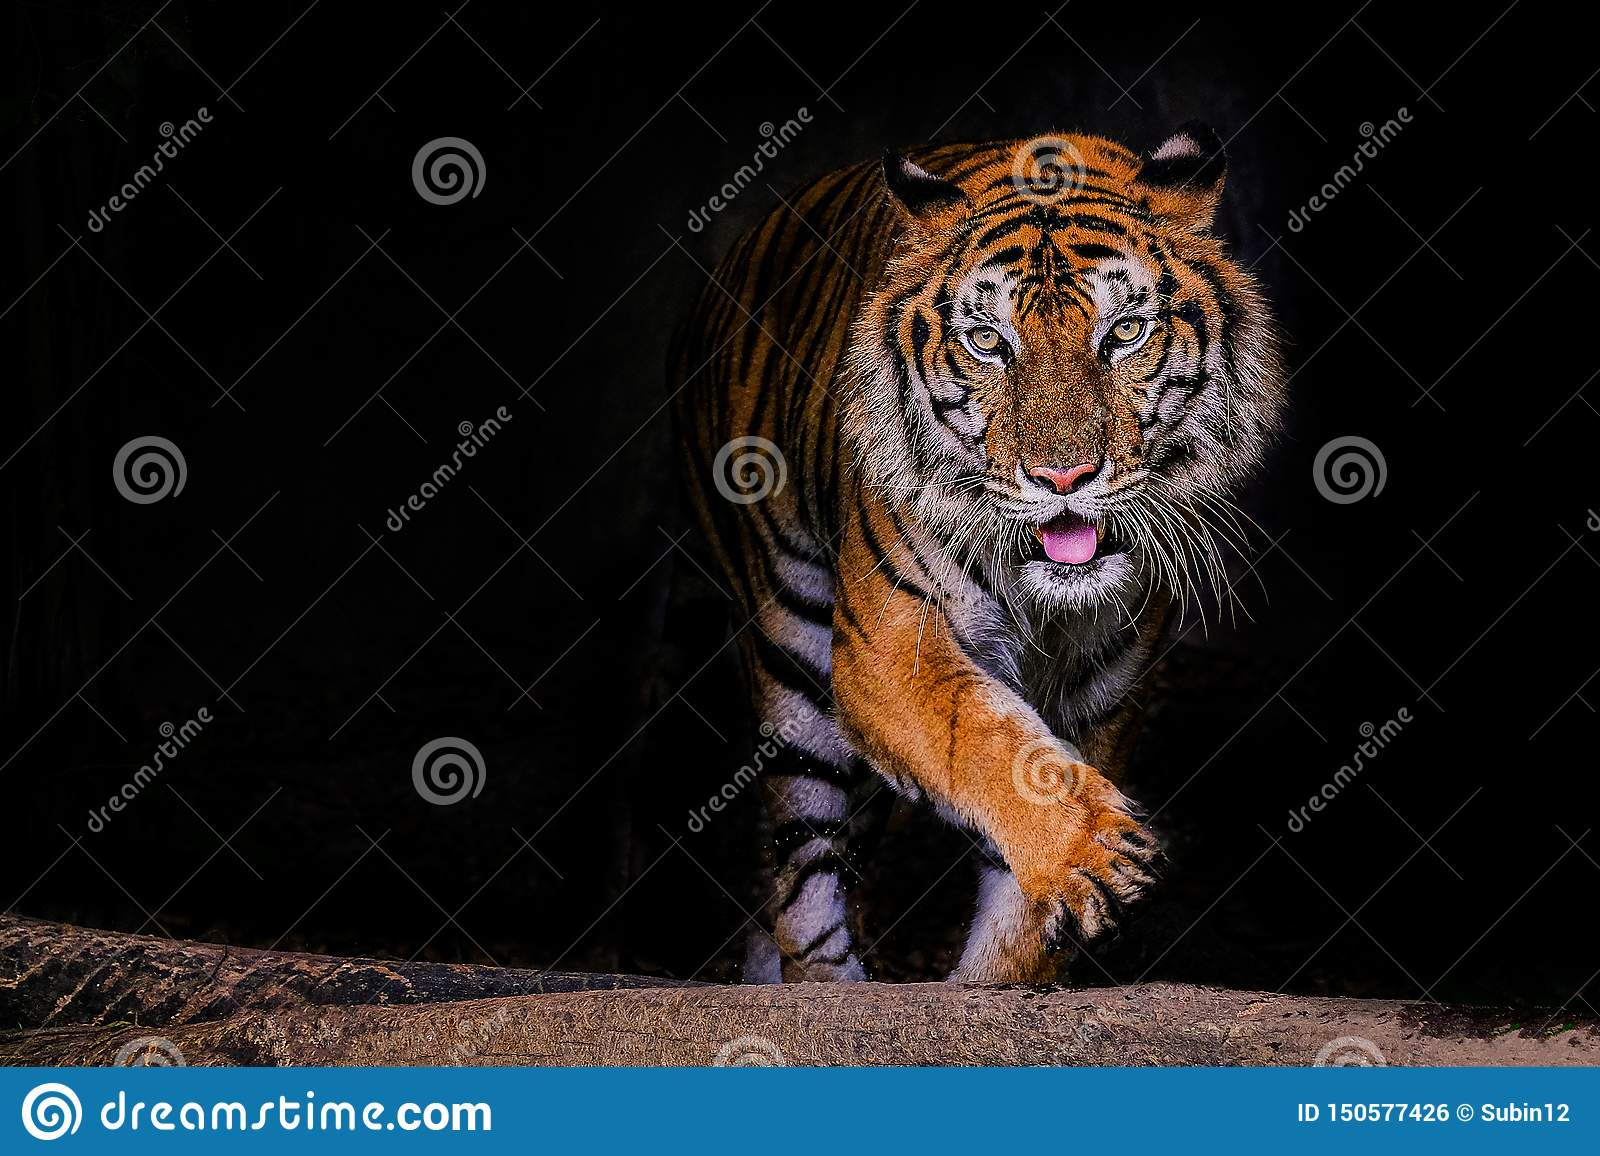 Tiger portrait of a bengal tiger in Thailand on black background